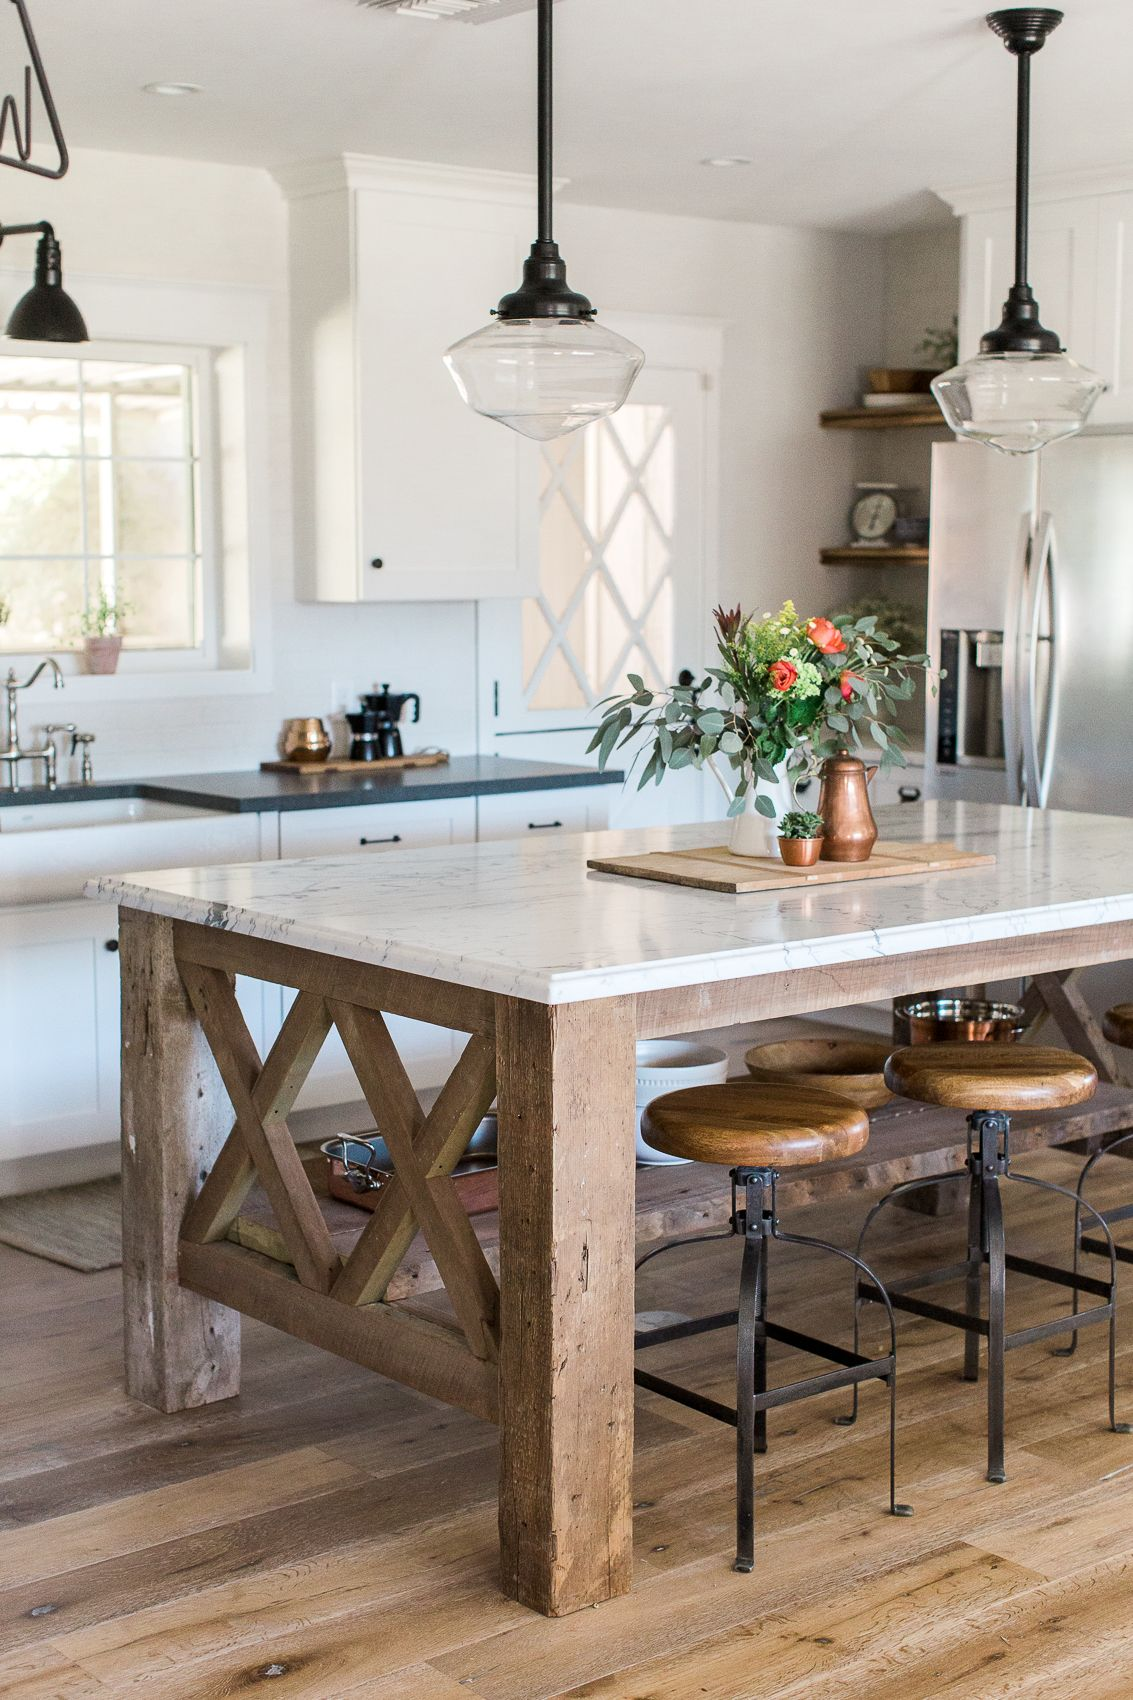 custom kitchen island built from barnwood with marble countertop